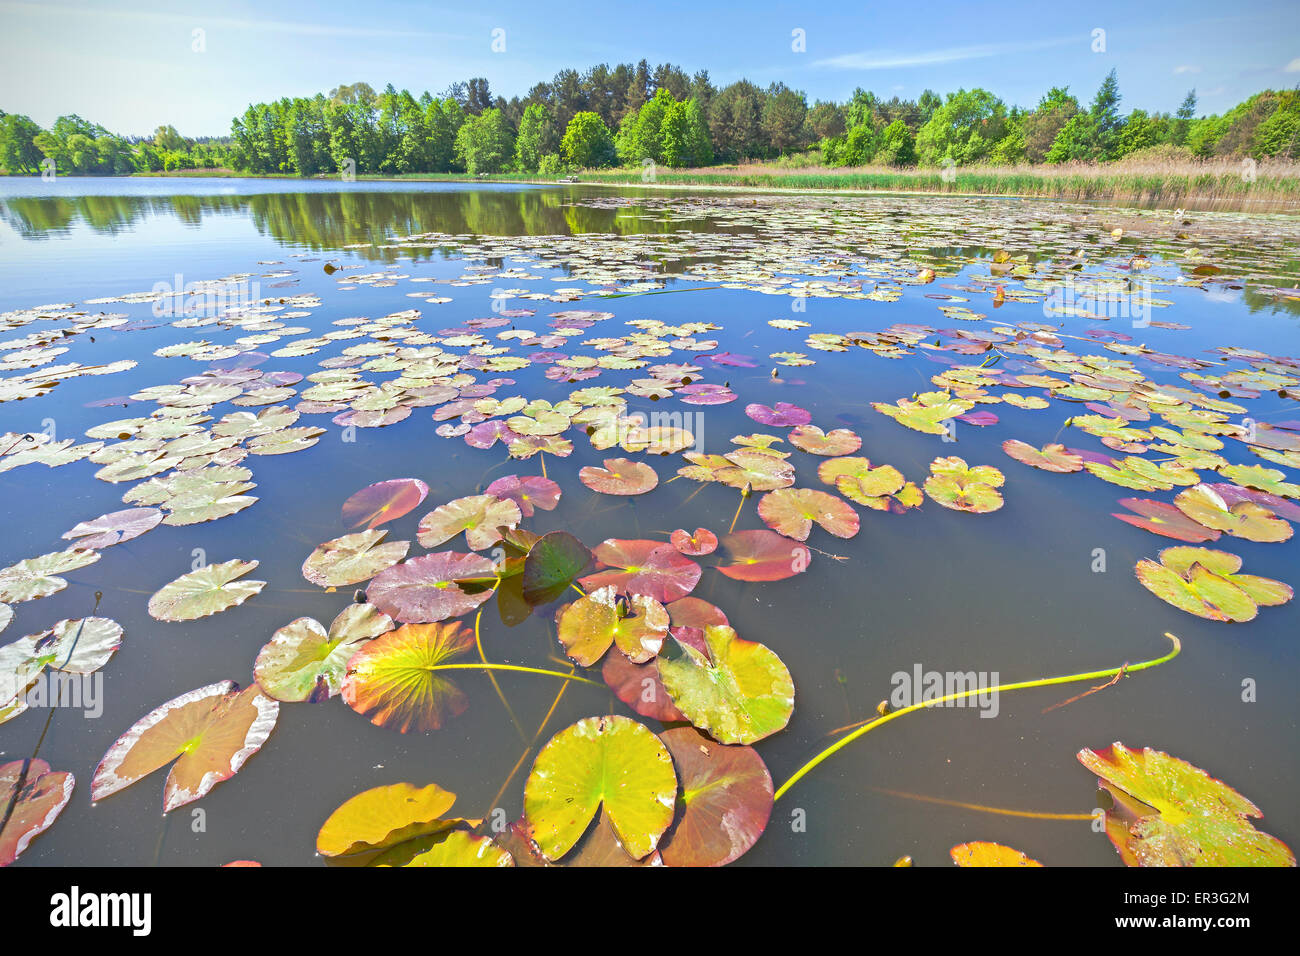 Water lilies, wide angle summer lake view. - Stock Image